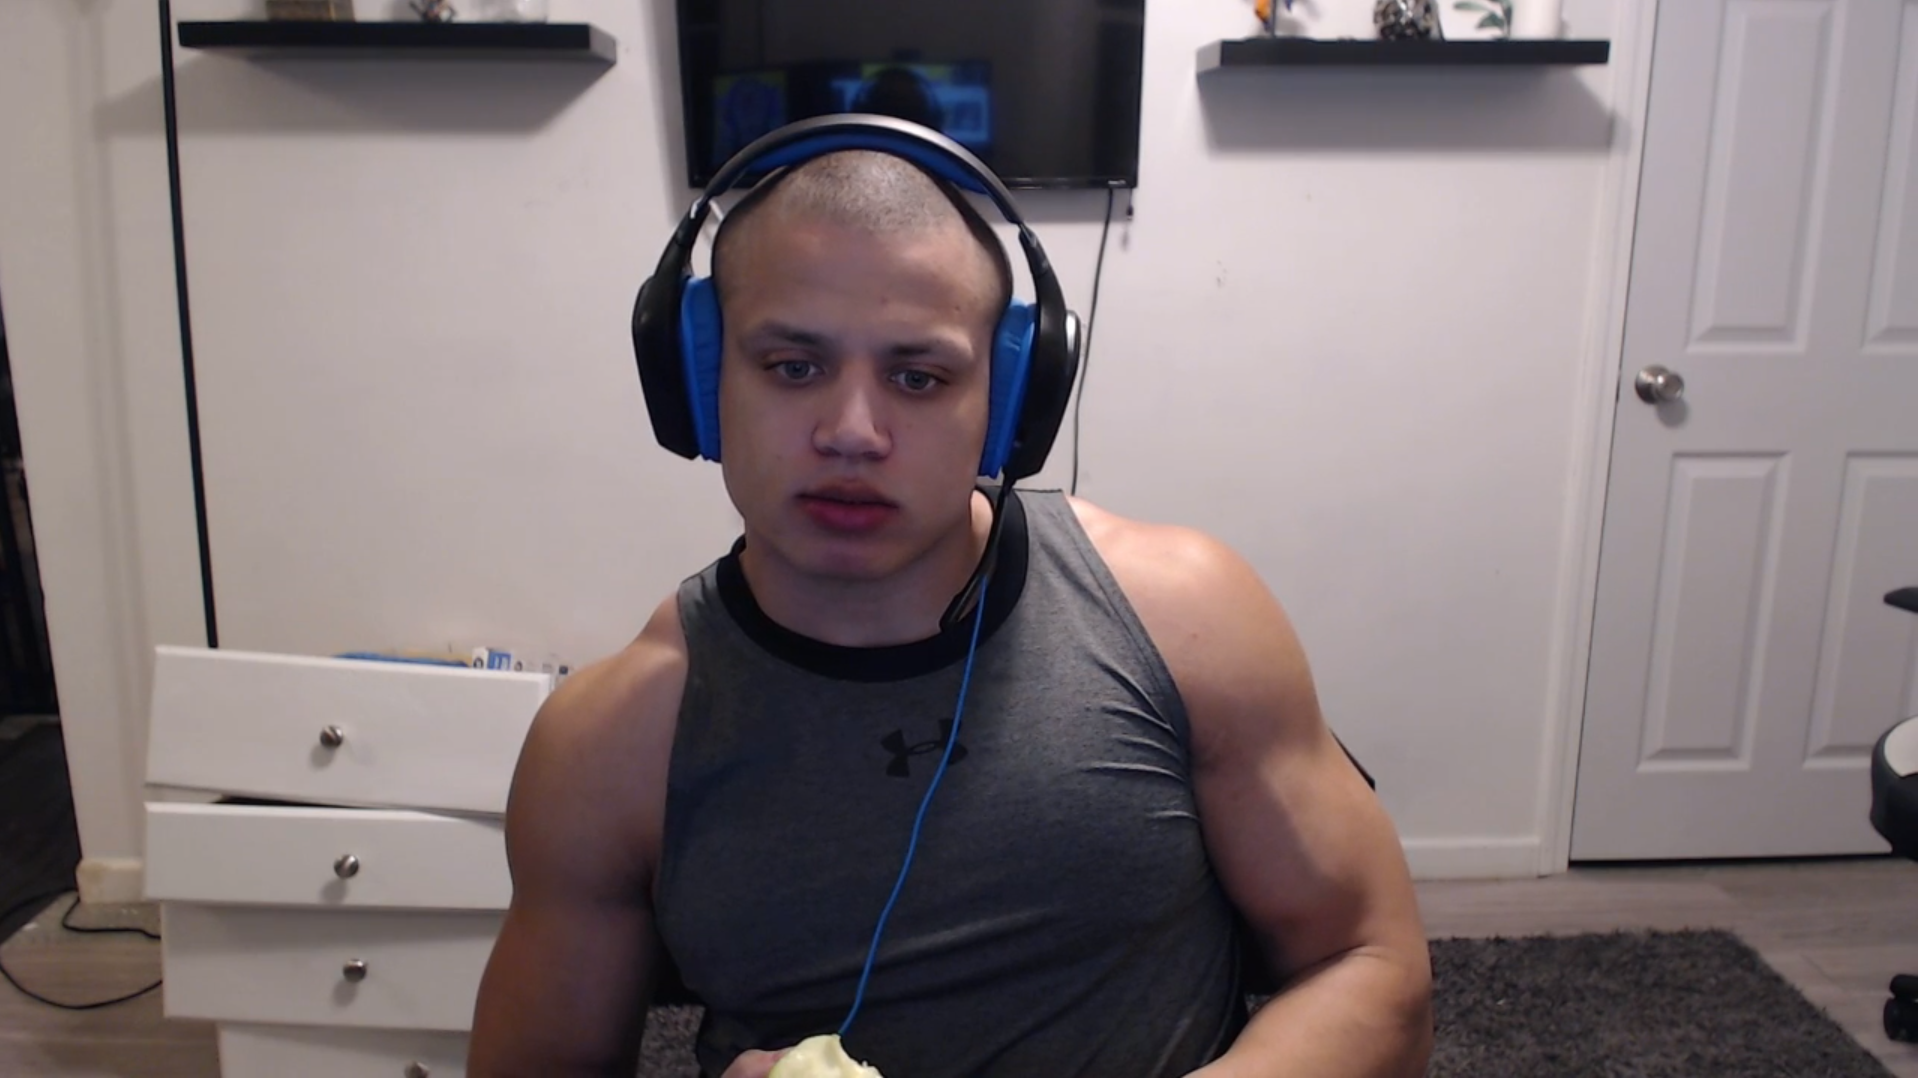 5 Unknown Facts About LoL Online Personality, Tyler1